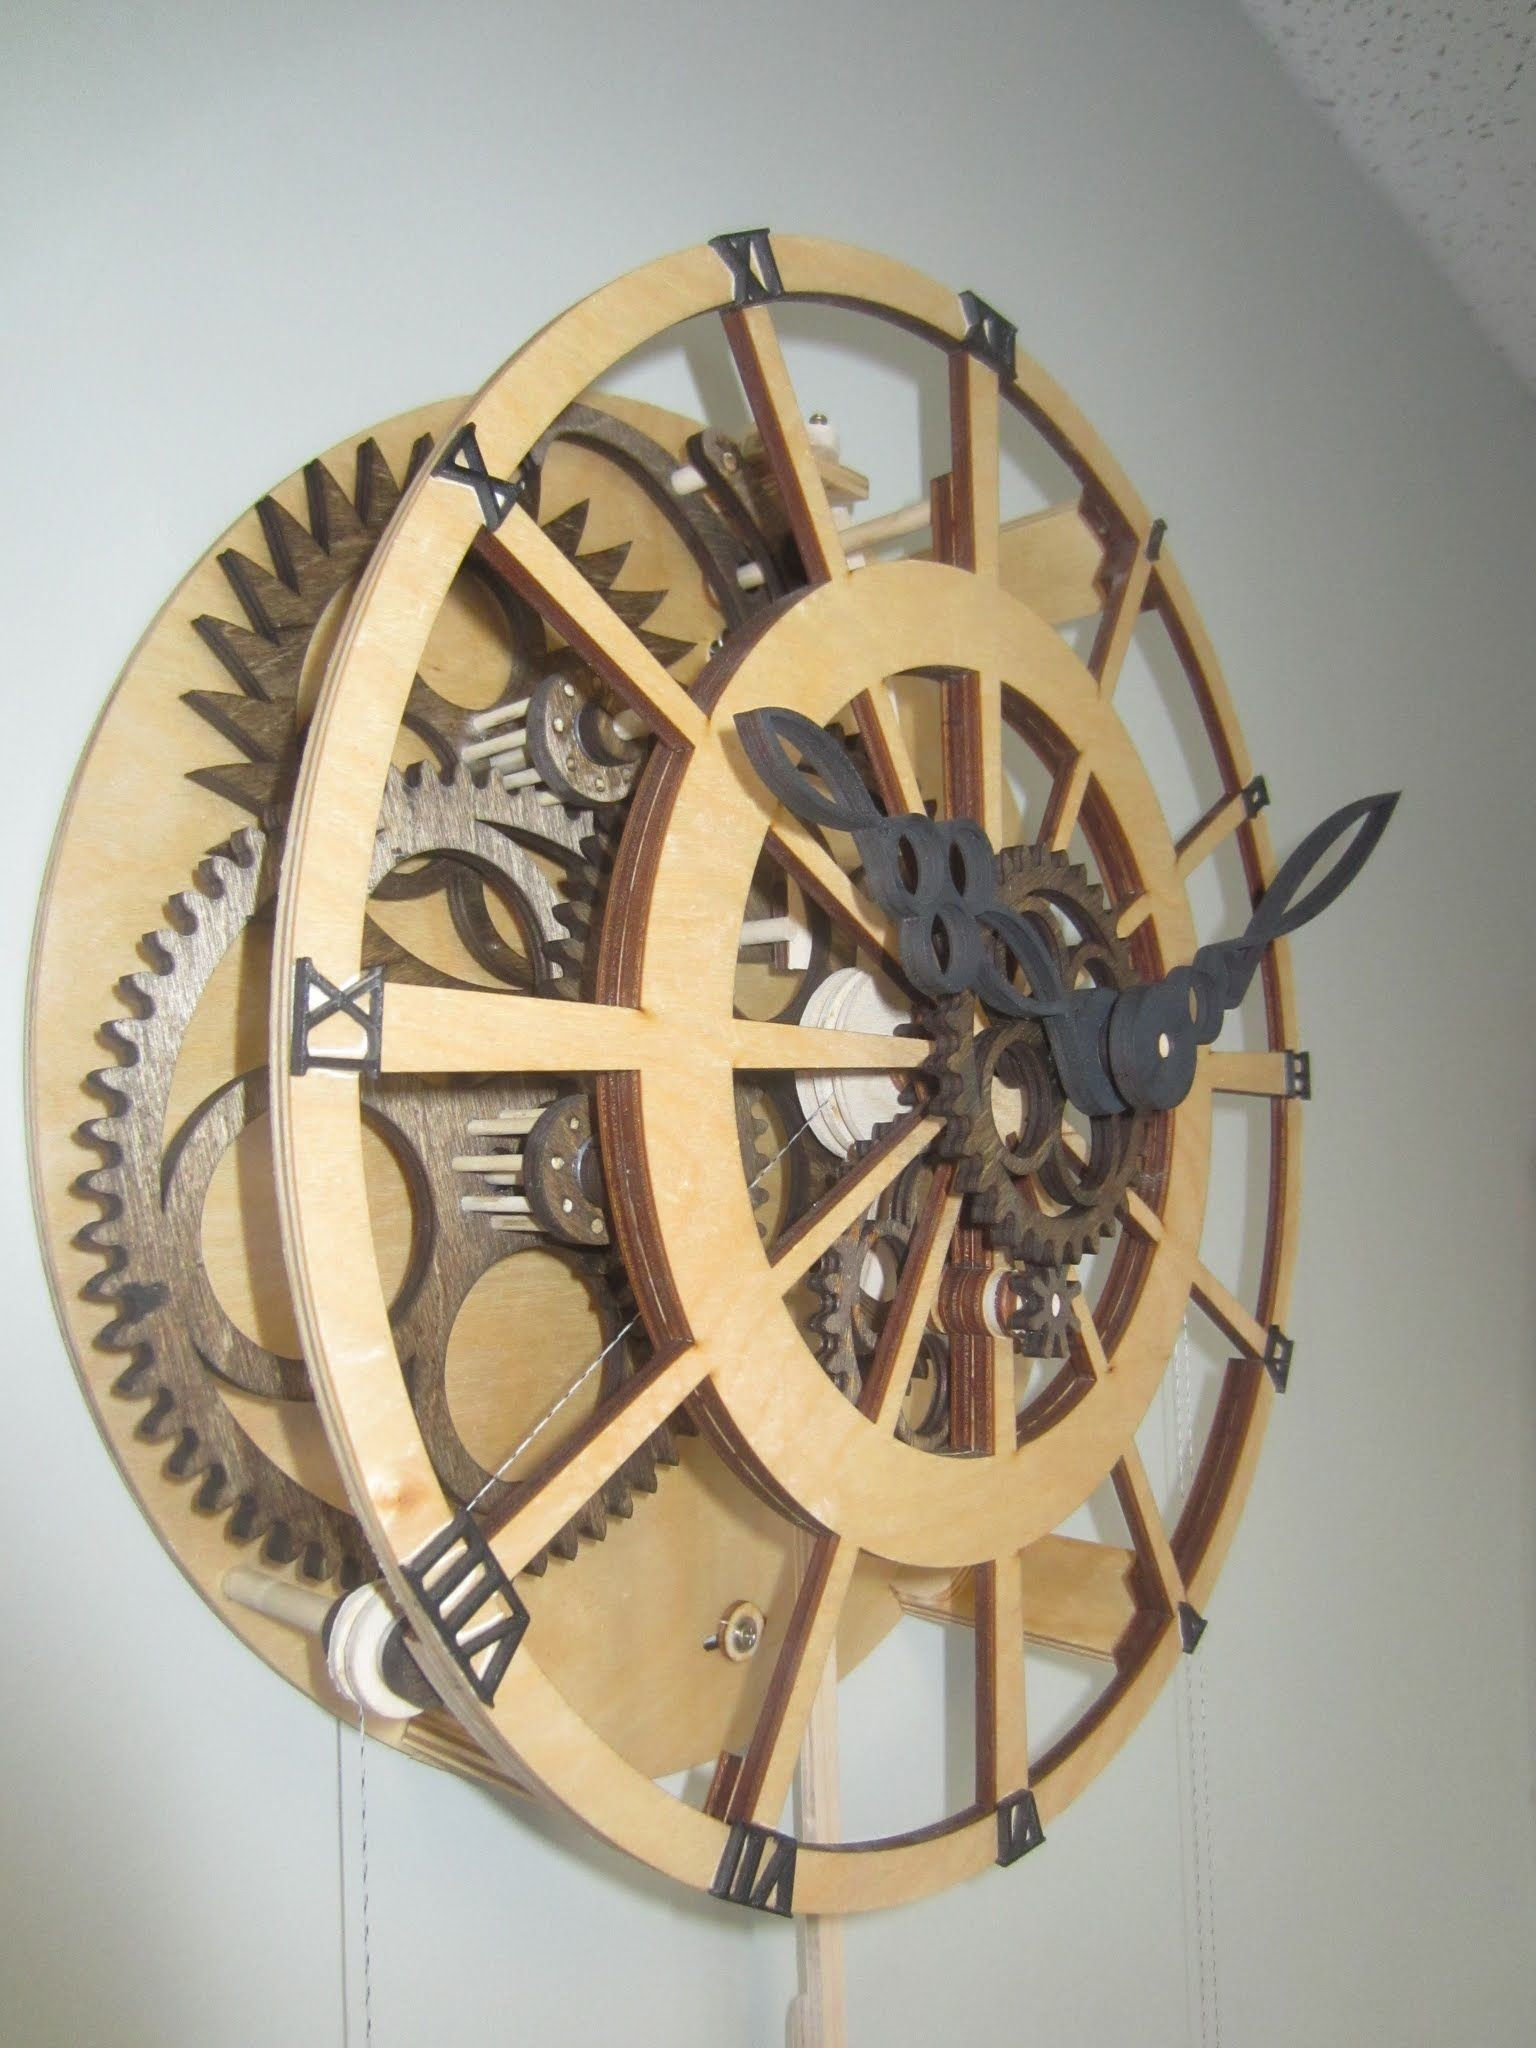 Customer Photos Projects Wooden Gear Clock Wooden Gears Gear Clock